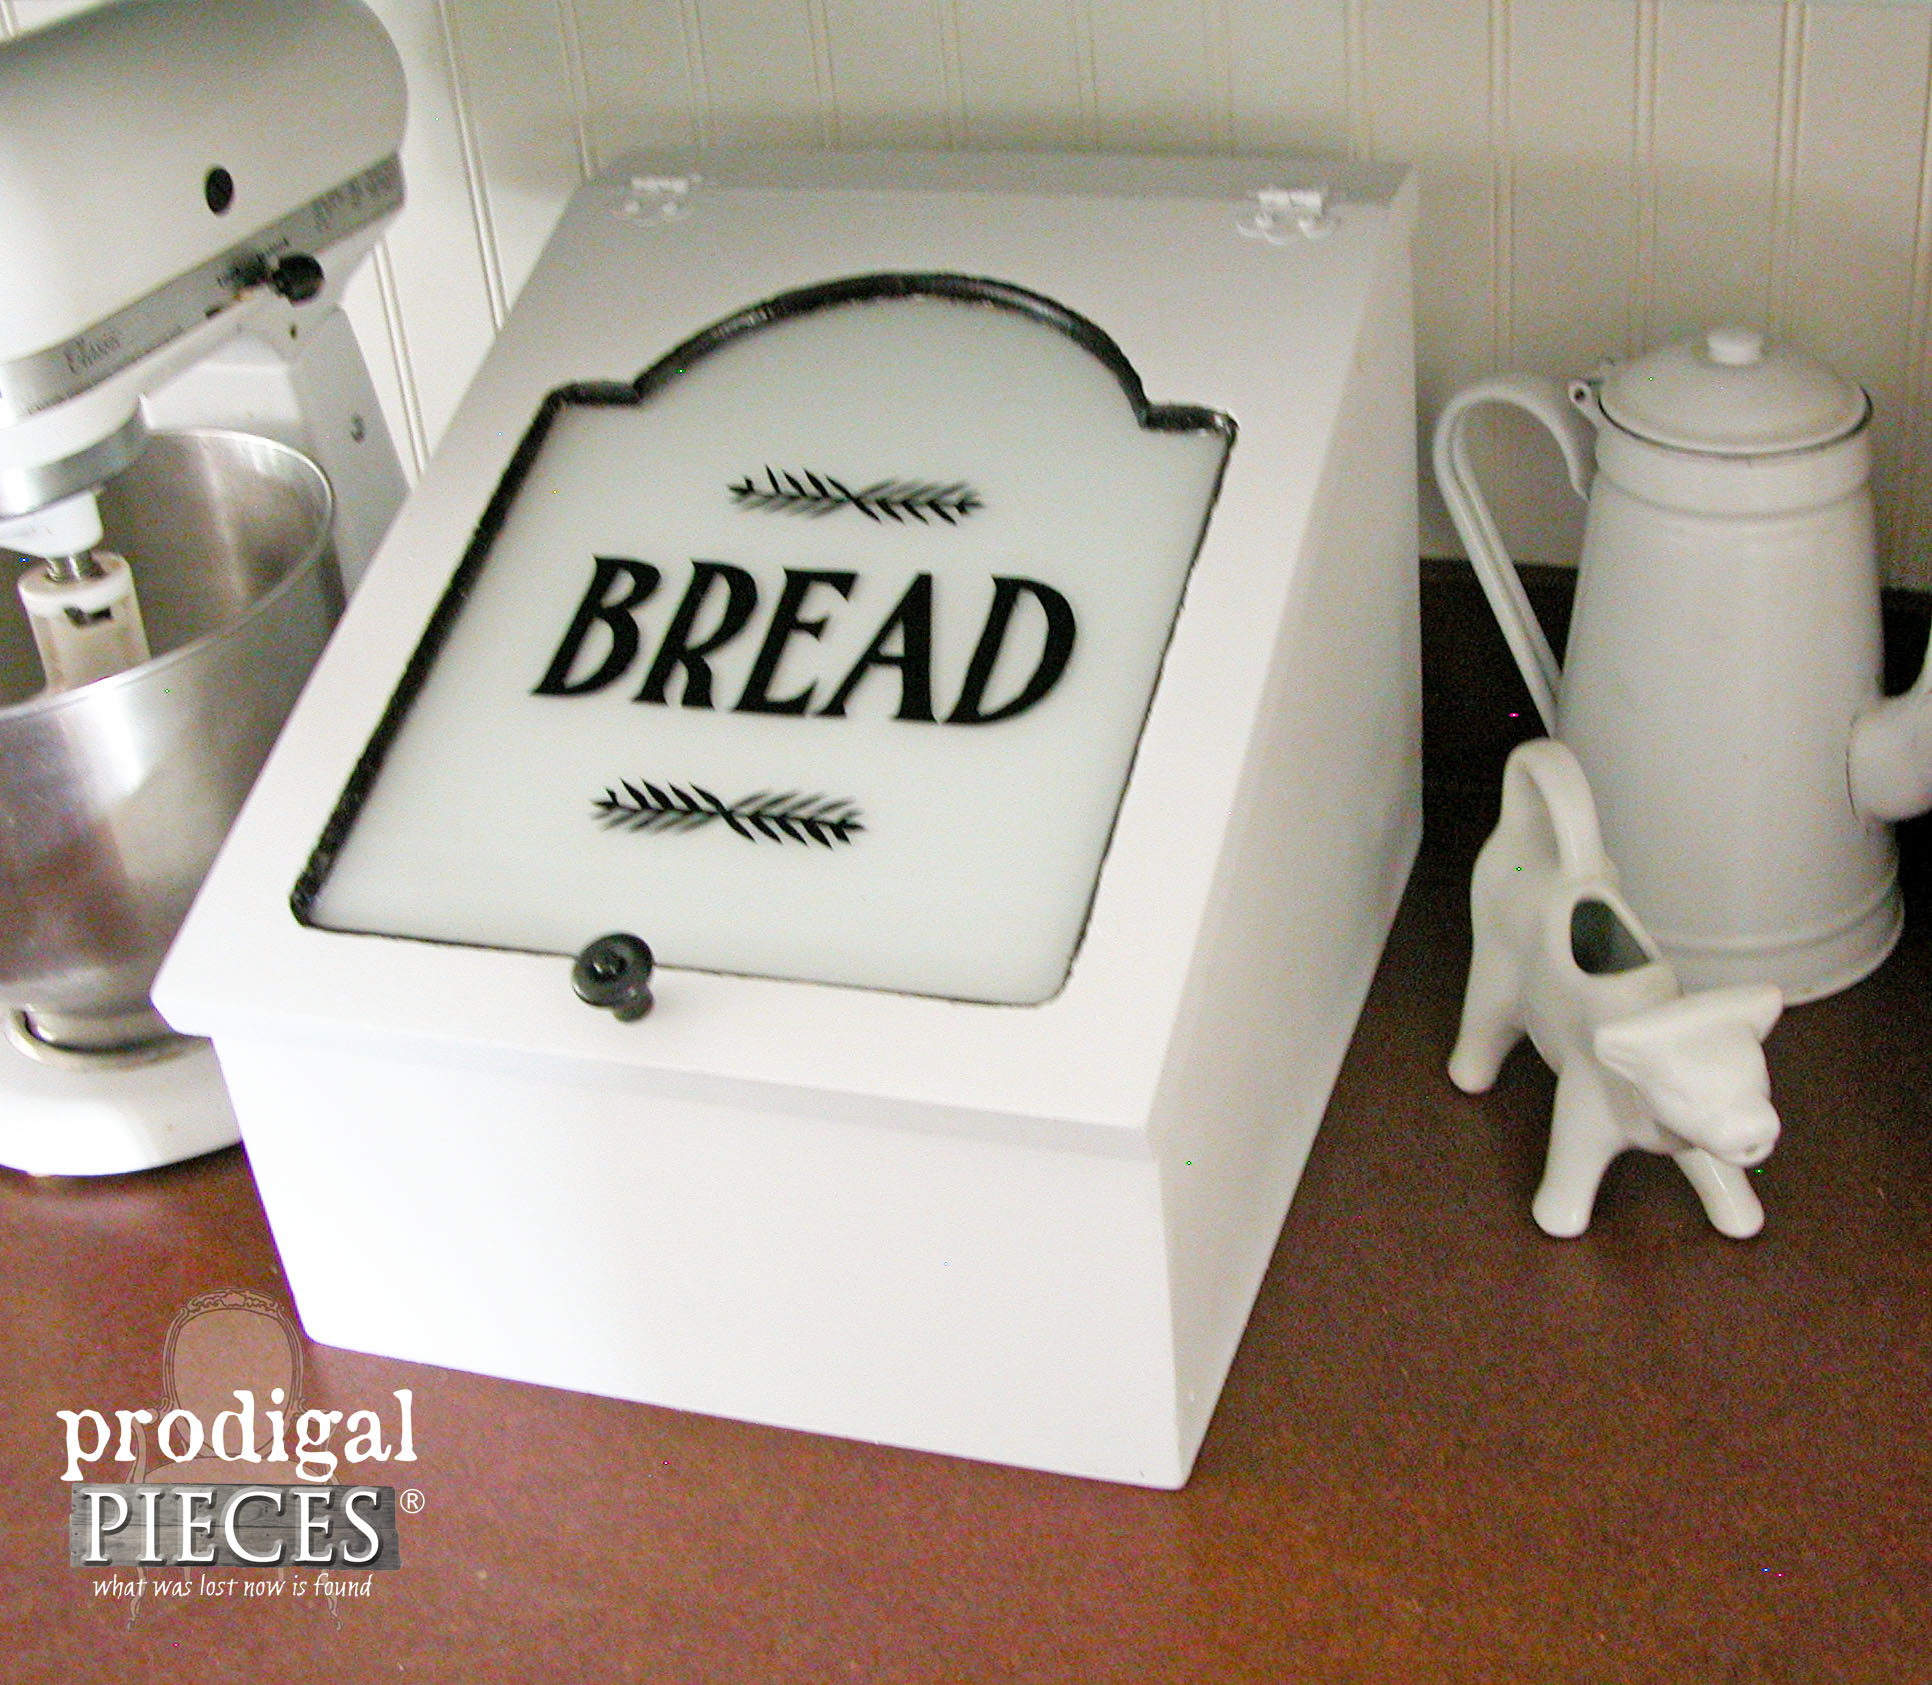 Enamelware Style Farmhouse Repurposed Charging Station by Prodigal Pieces | www.prodigalpieces.com